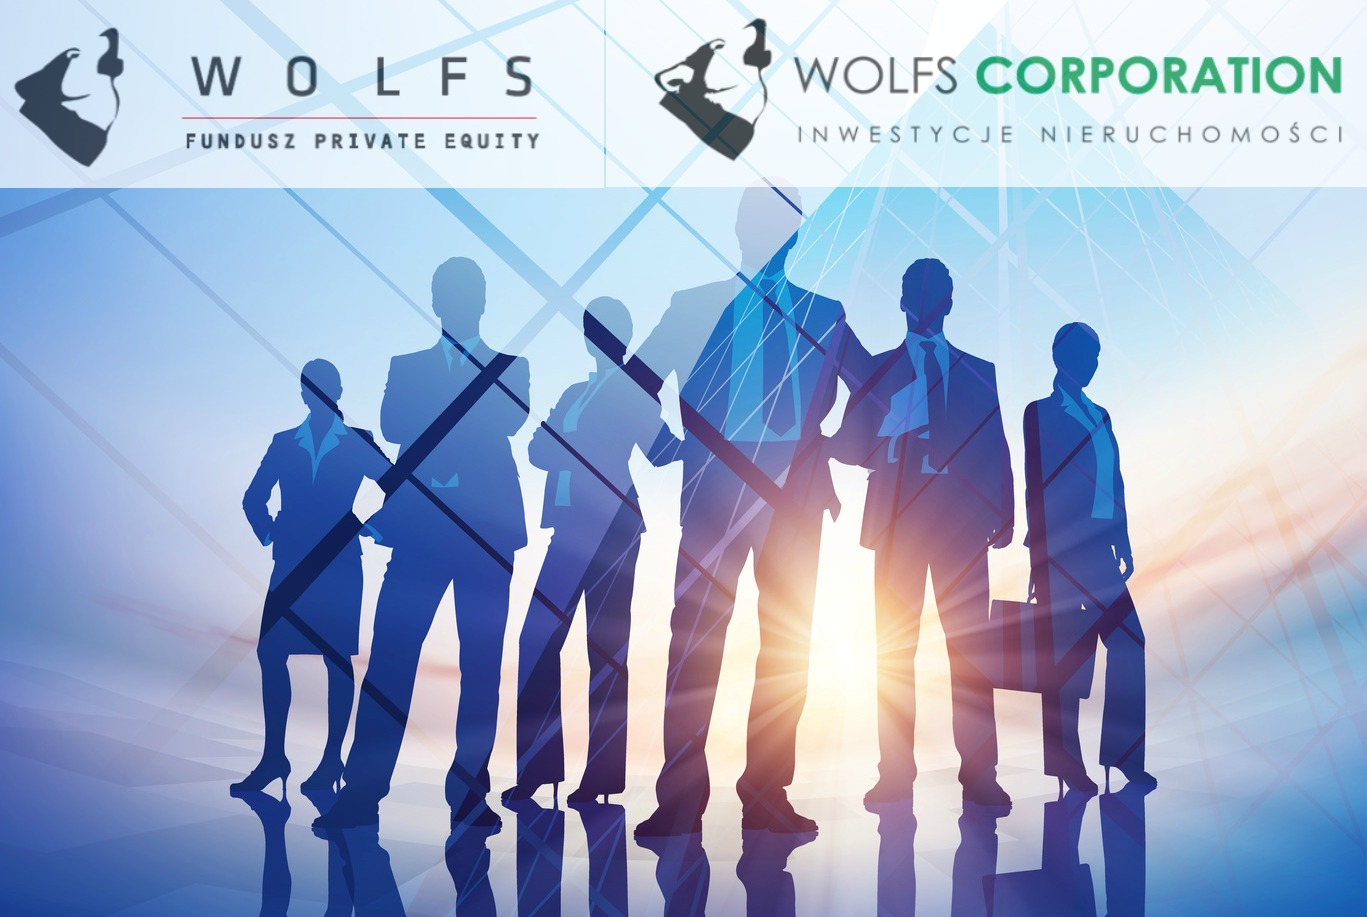 Investor news: The merger of the Wolfs Fundusz Private Equity and the Wolfs Corporation has become a fact!